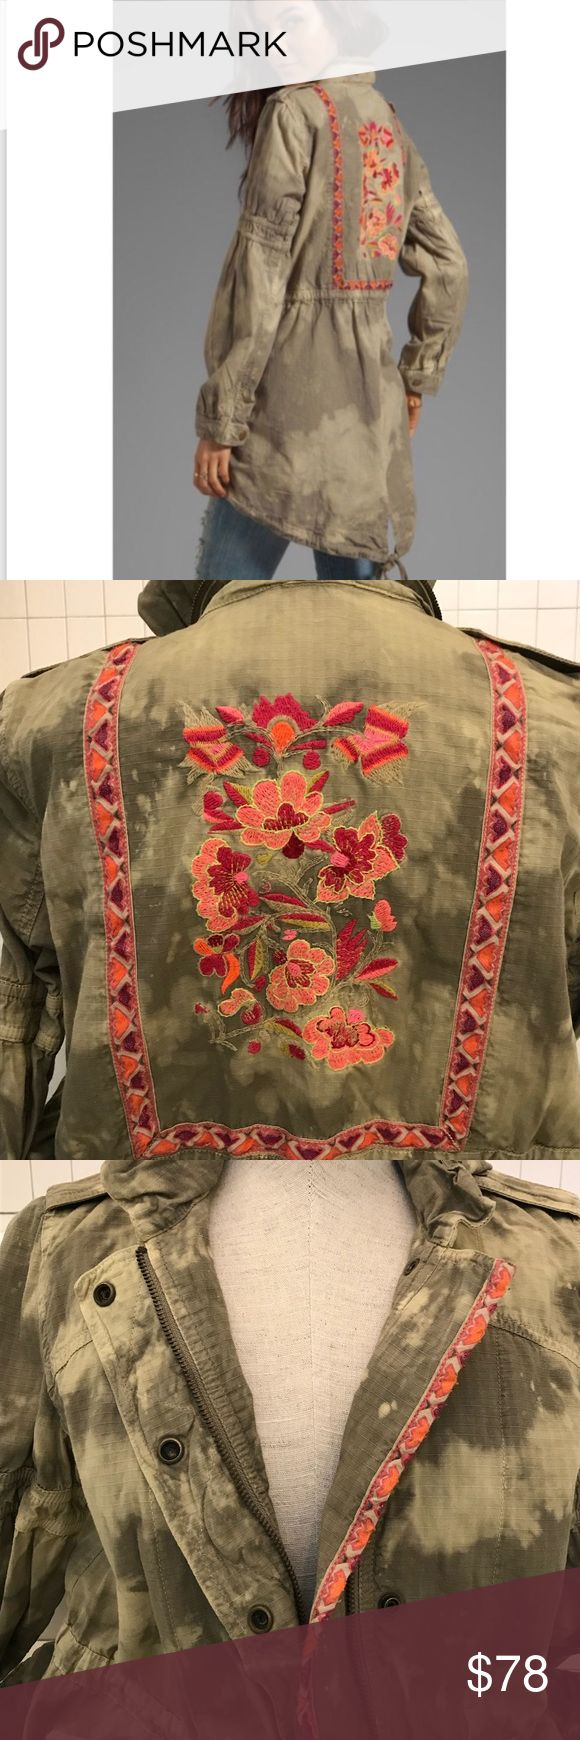 """Free People Embriodered Festival Anorak Jacket Tie dye / acid wash fades a surplus jacket cinched into a unique shape by plenty of utilitarian details. Embroidery trims the placket and continues on the back, creating a framed floral accent. Approx. length from shoulder: front 31""""; back 34"""". Zip front with snap closure. Stow-away hood. Snap epaulets. Snap and hook-and-loop cuffs. Front hidden-snap flap pockets. Drawstring at waist. Split back hem with drawstring tie. Cotton; machine wash. By…"""